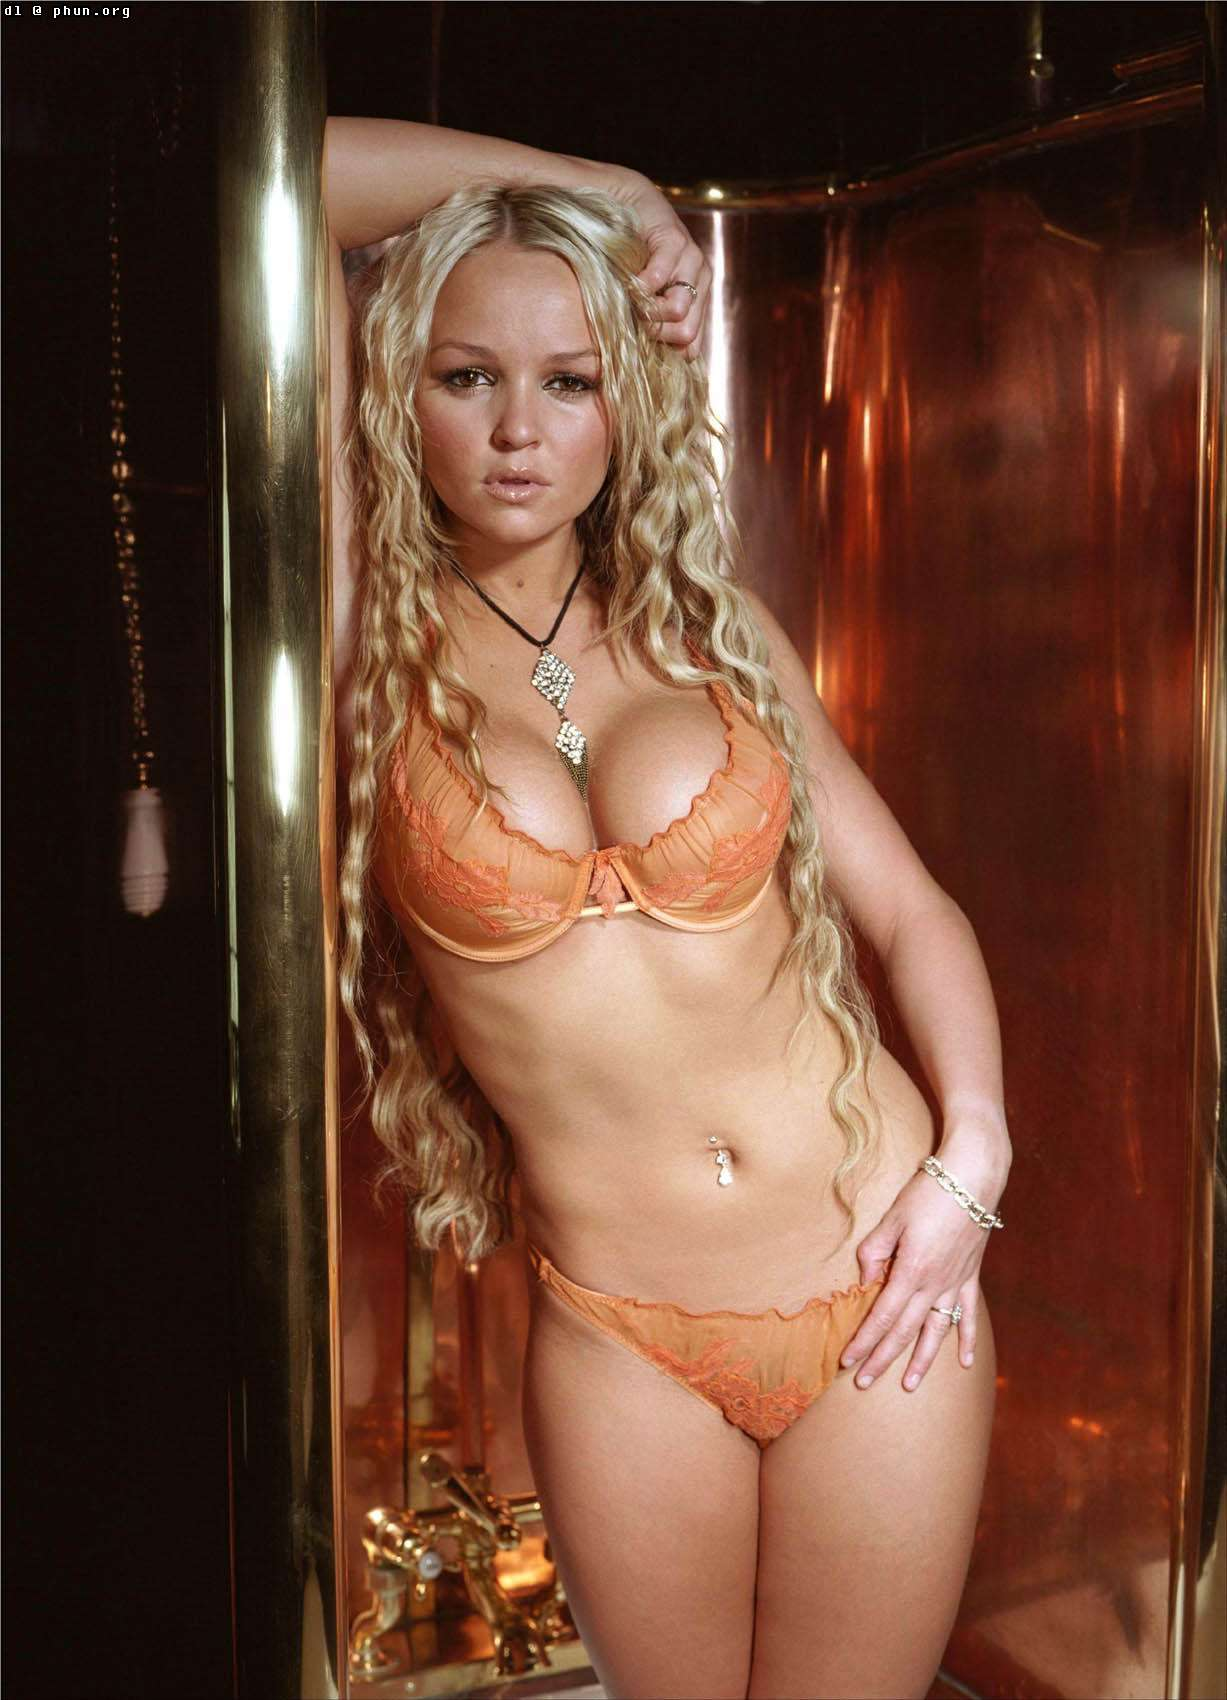 jennifer ellison bum pics